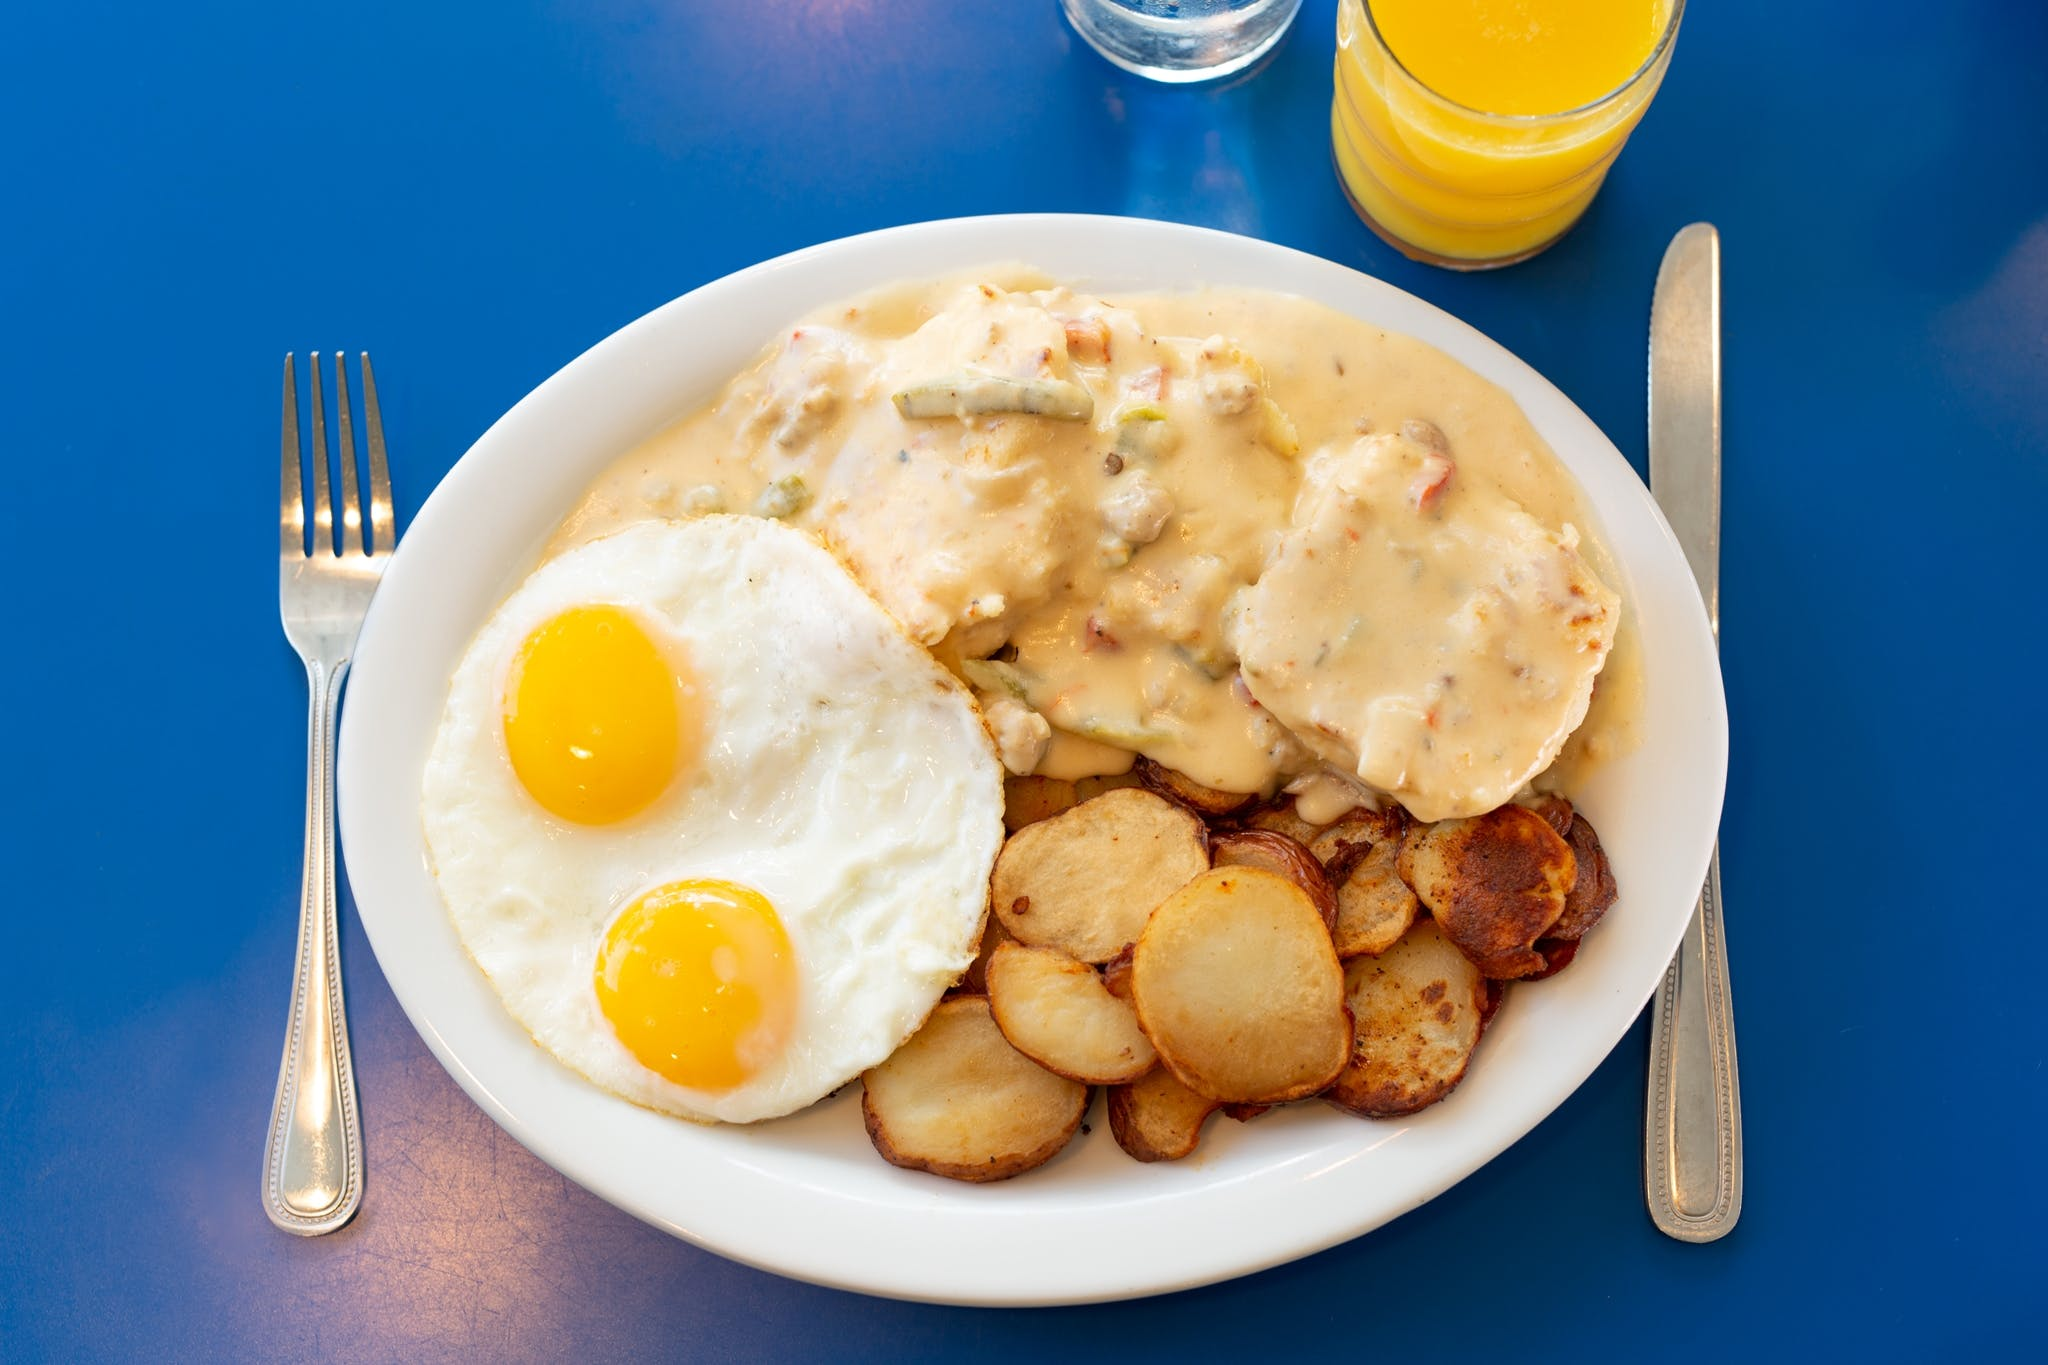 Biscuits and Gravy from Monty's Blue Plate Diner in Madison, WI